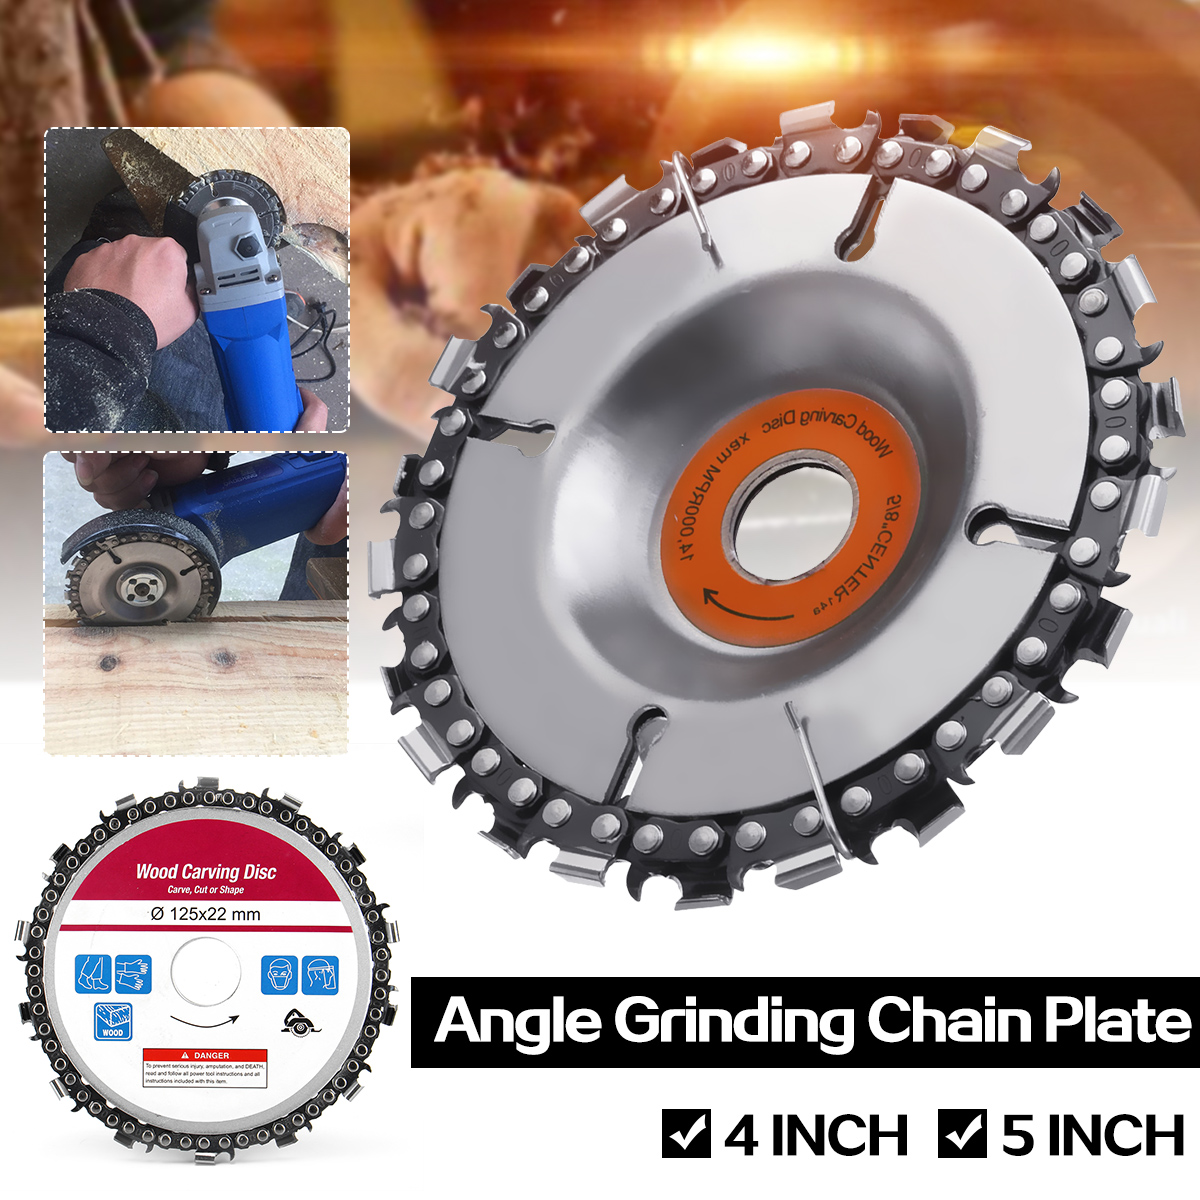 Professional 4/5 Inch Grinder Disc And Chain 22/14 Tooth Fine Abrasive Cut Chain For 100/115/125mm Angle Grinder